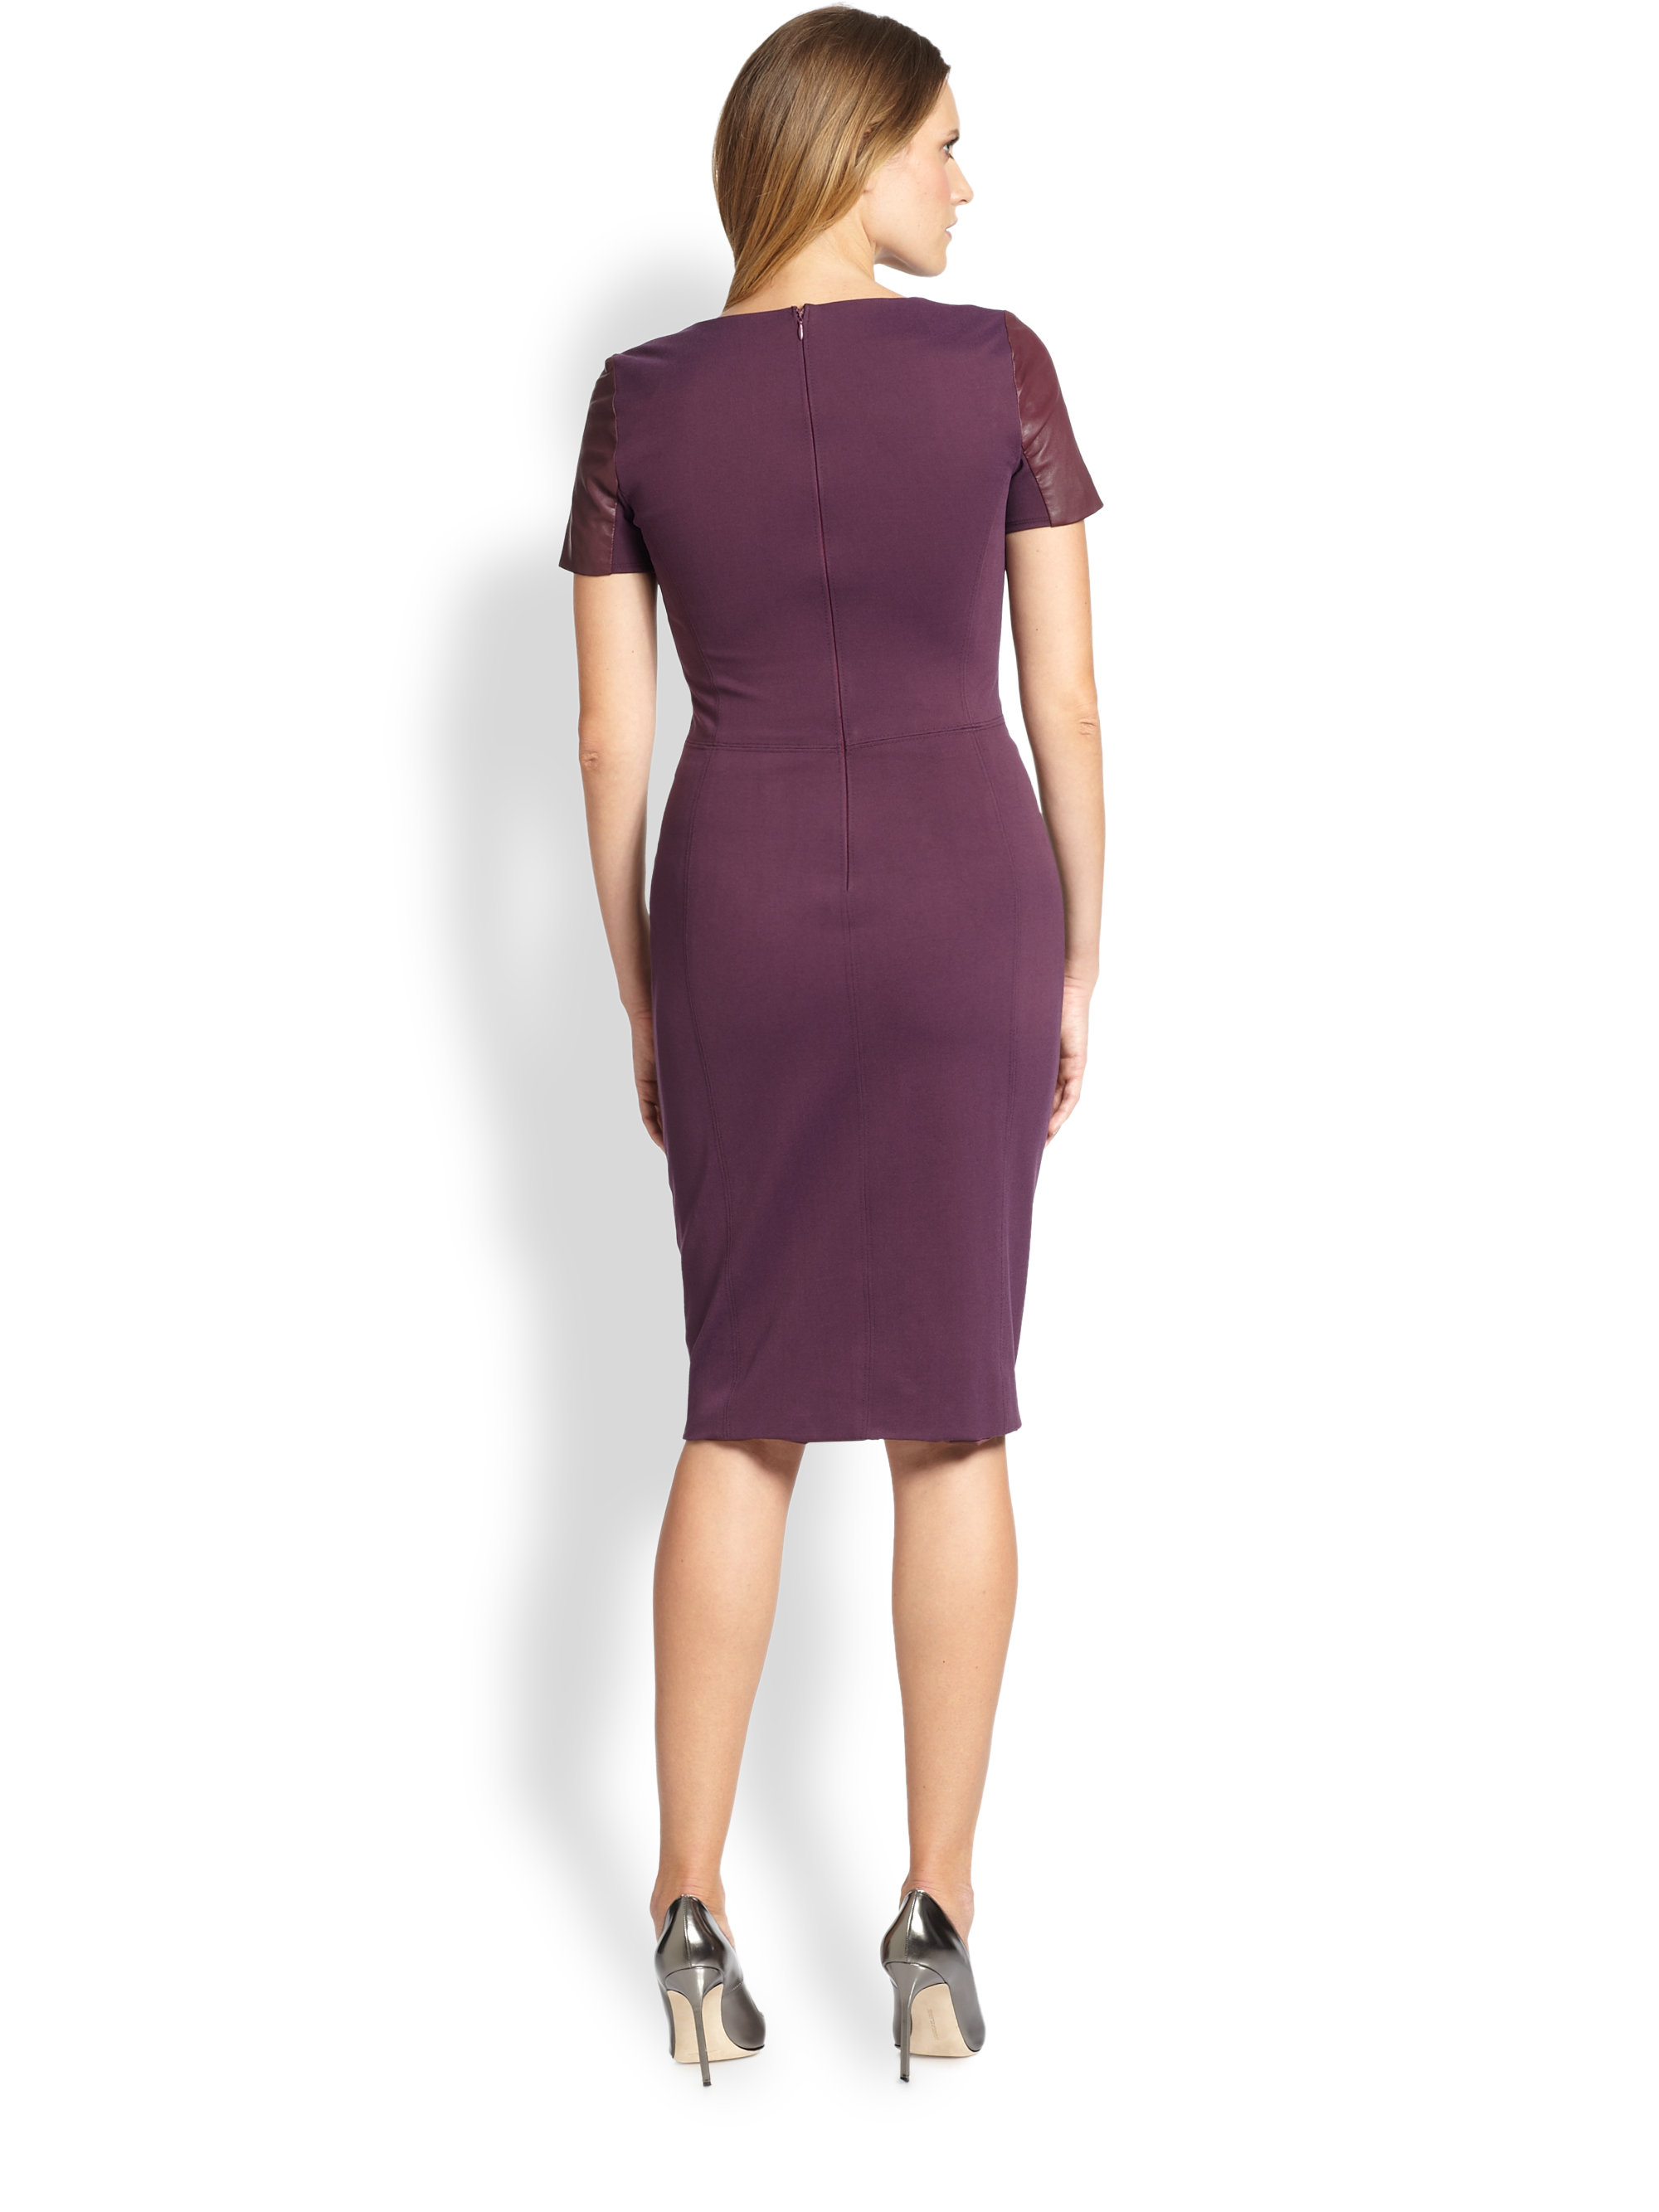 c8a416e722ea Lyst - Halston Leather Ponte Knit Dress in Red